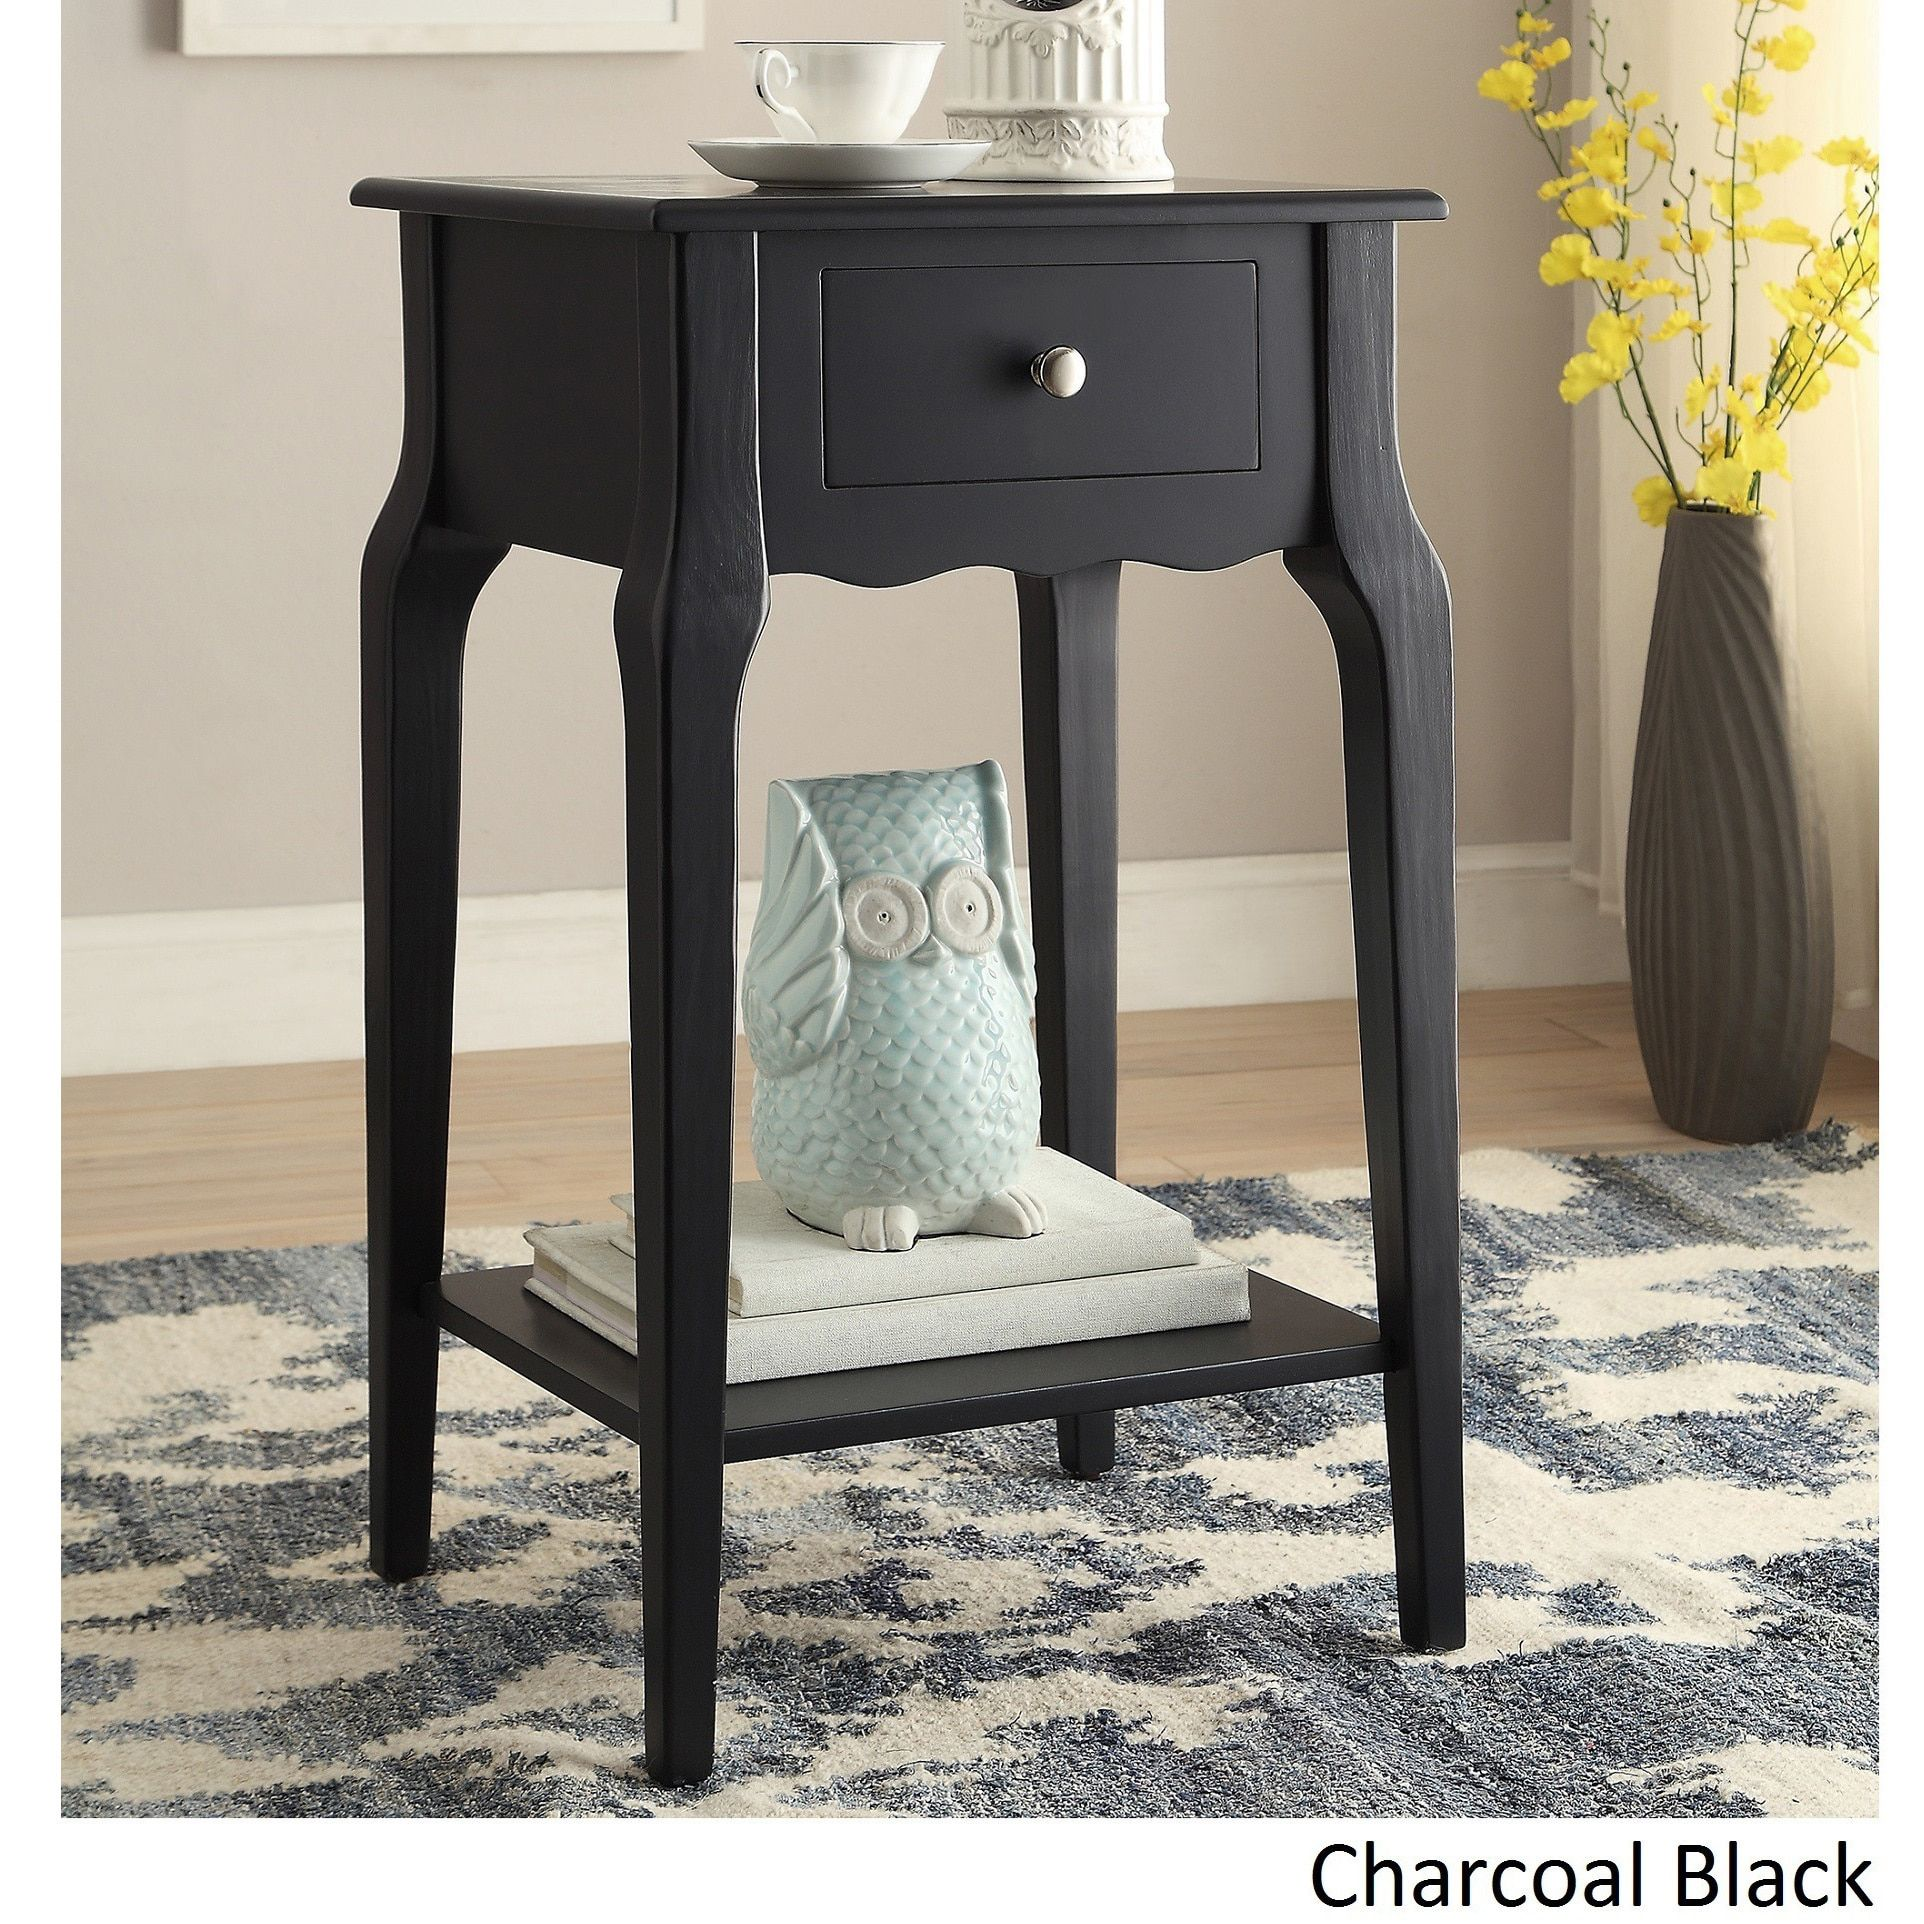 daniella drawer wood storage accent end table inspire bold tachuri target midnight black white coffee short console inch wide nightstand contemporary pendant lights light accents